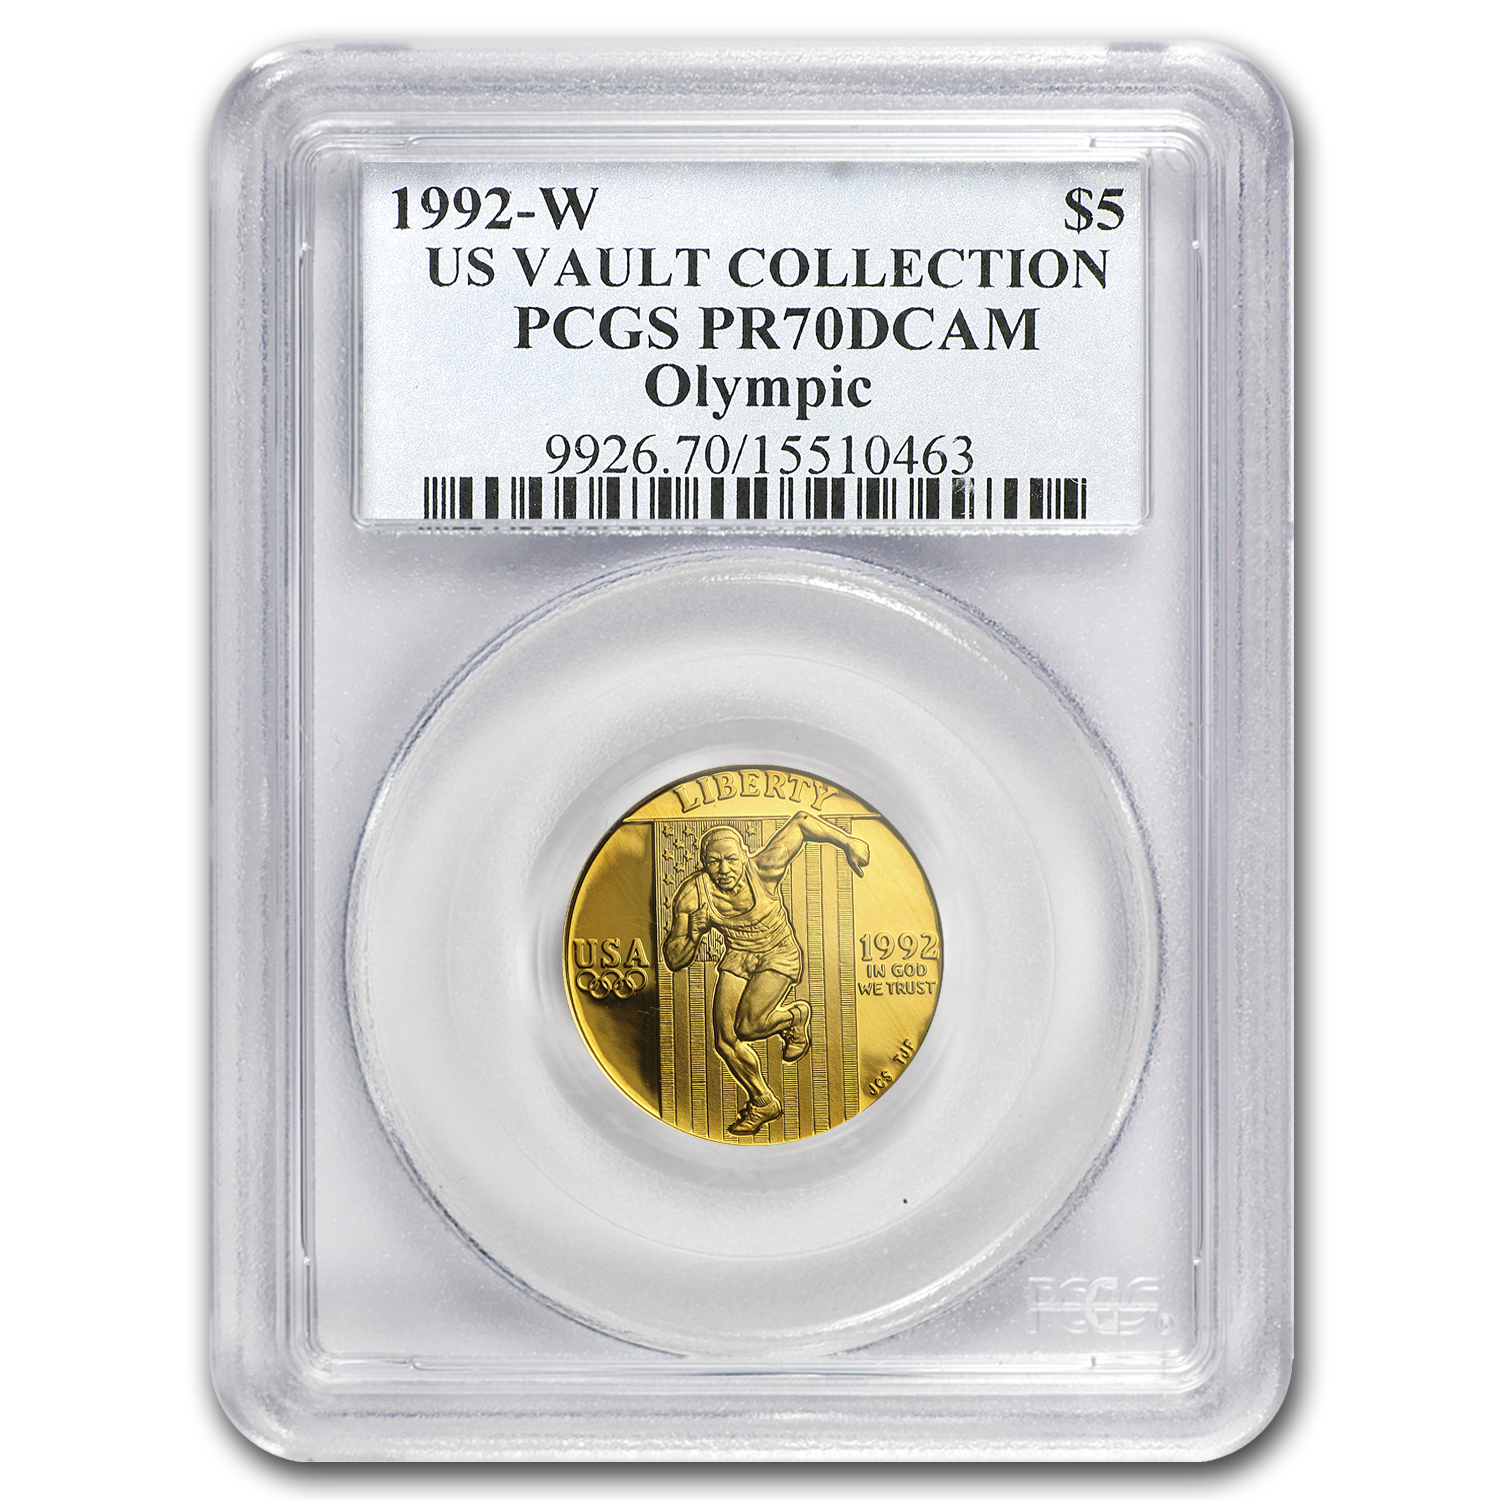 1992-W Gold $5 Commem Olympic PR-70 PCGS